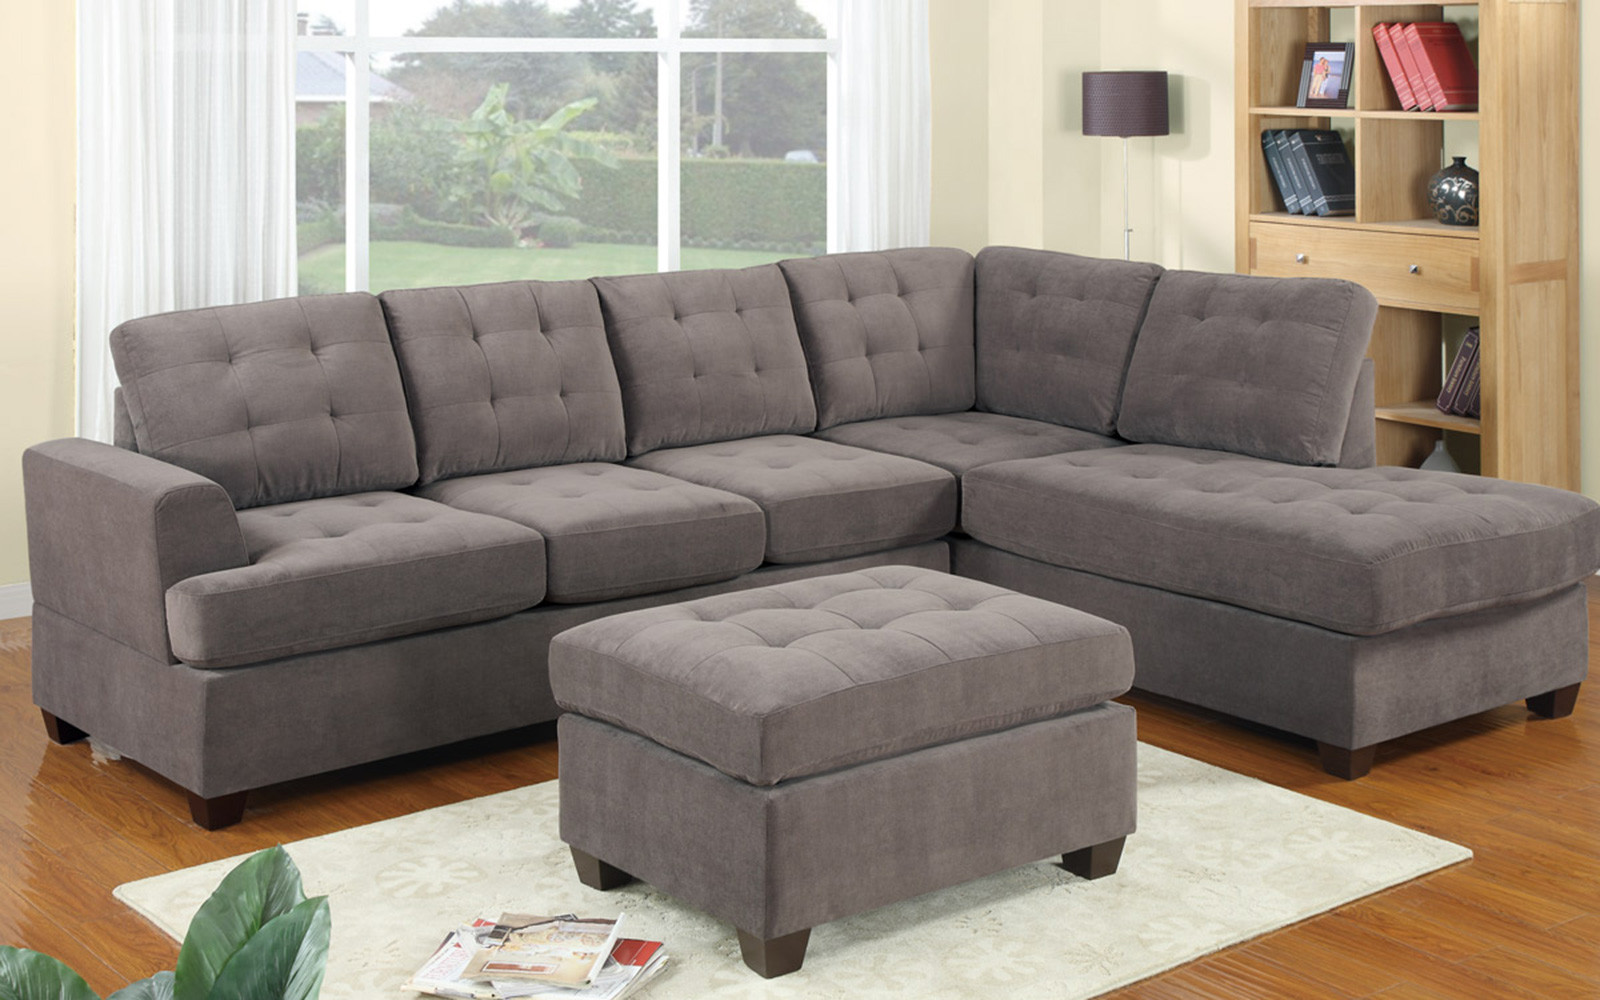 Good 2 Piece Modern Reversible Grey Tufted Microfiber Sectional Sofa With Ottoman